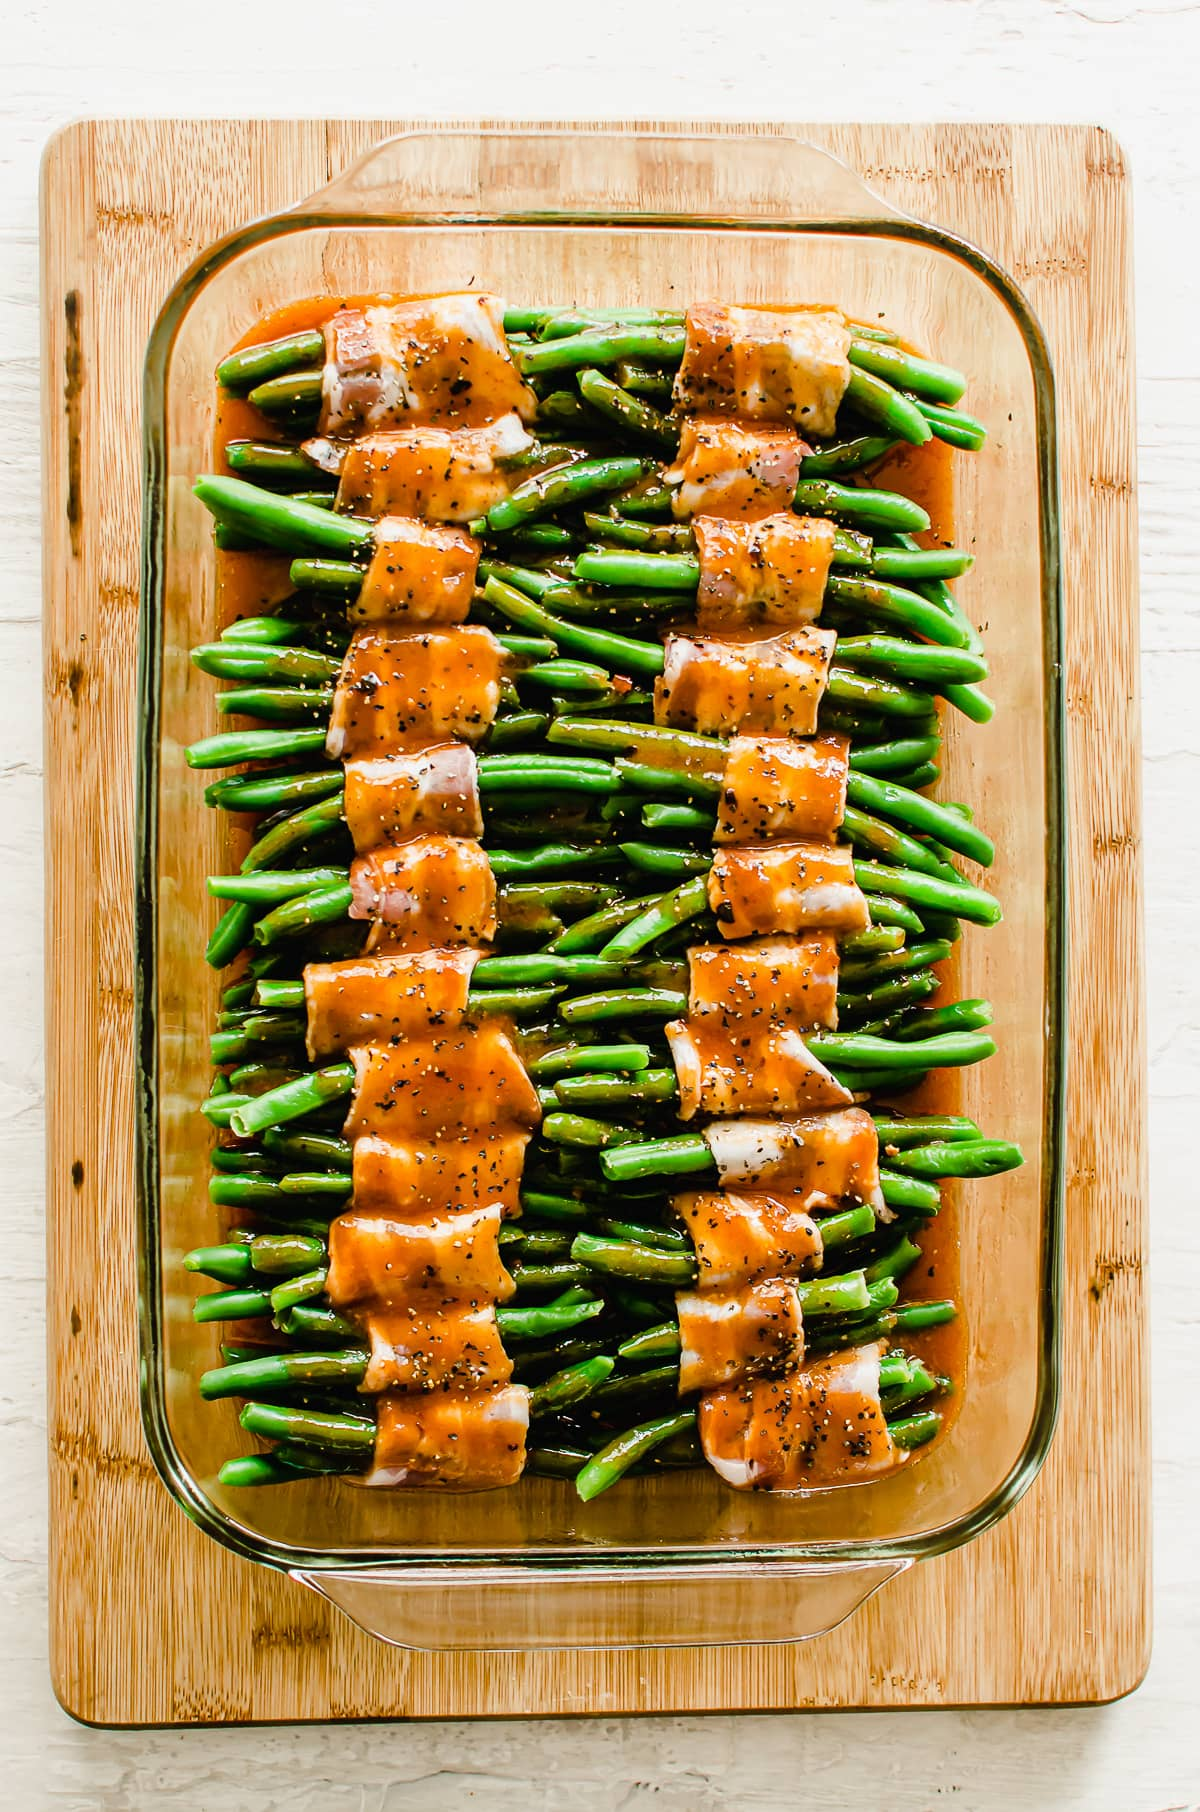 Unbaked bacon-wrapped green beans with catalina dressing in a dish.